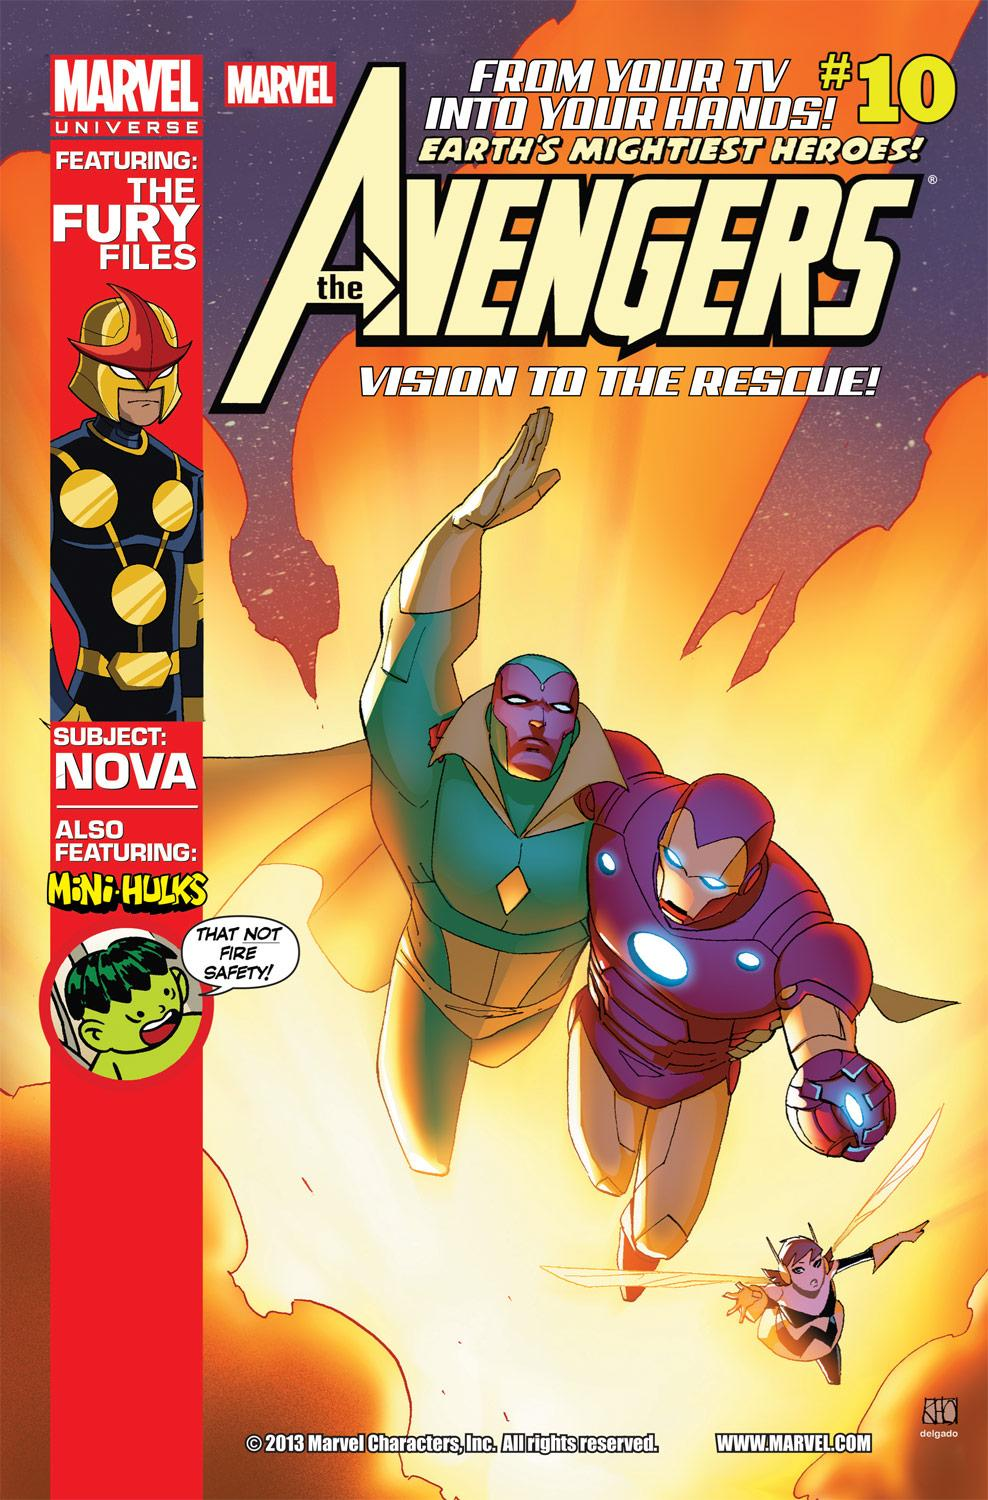 Marvel Universe Avengers: Earth's Mightiest Heroes (2012) #10